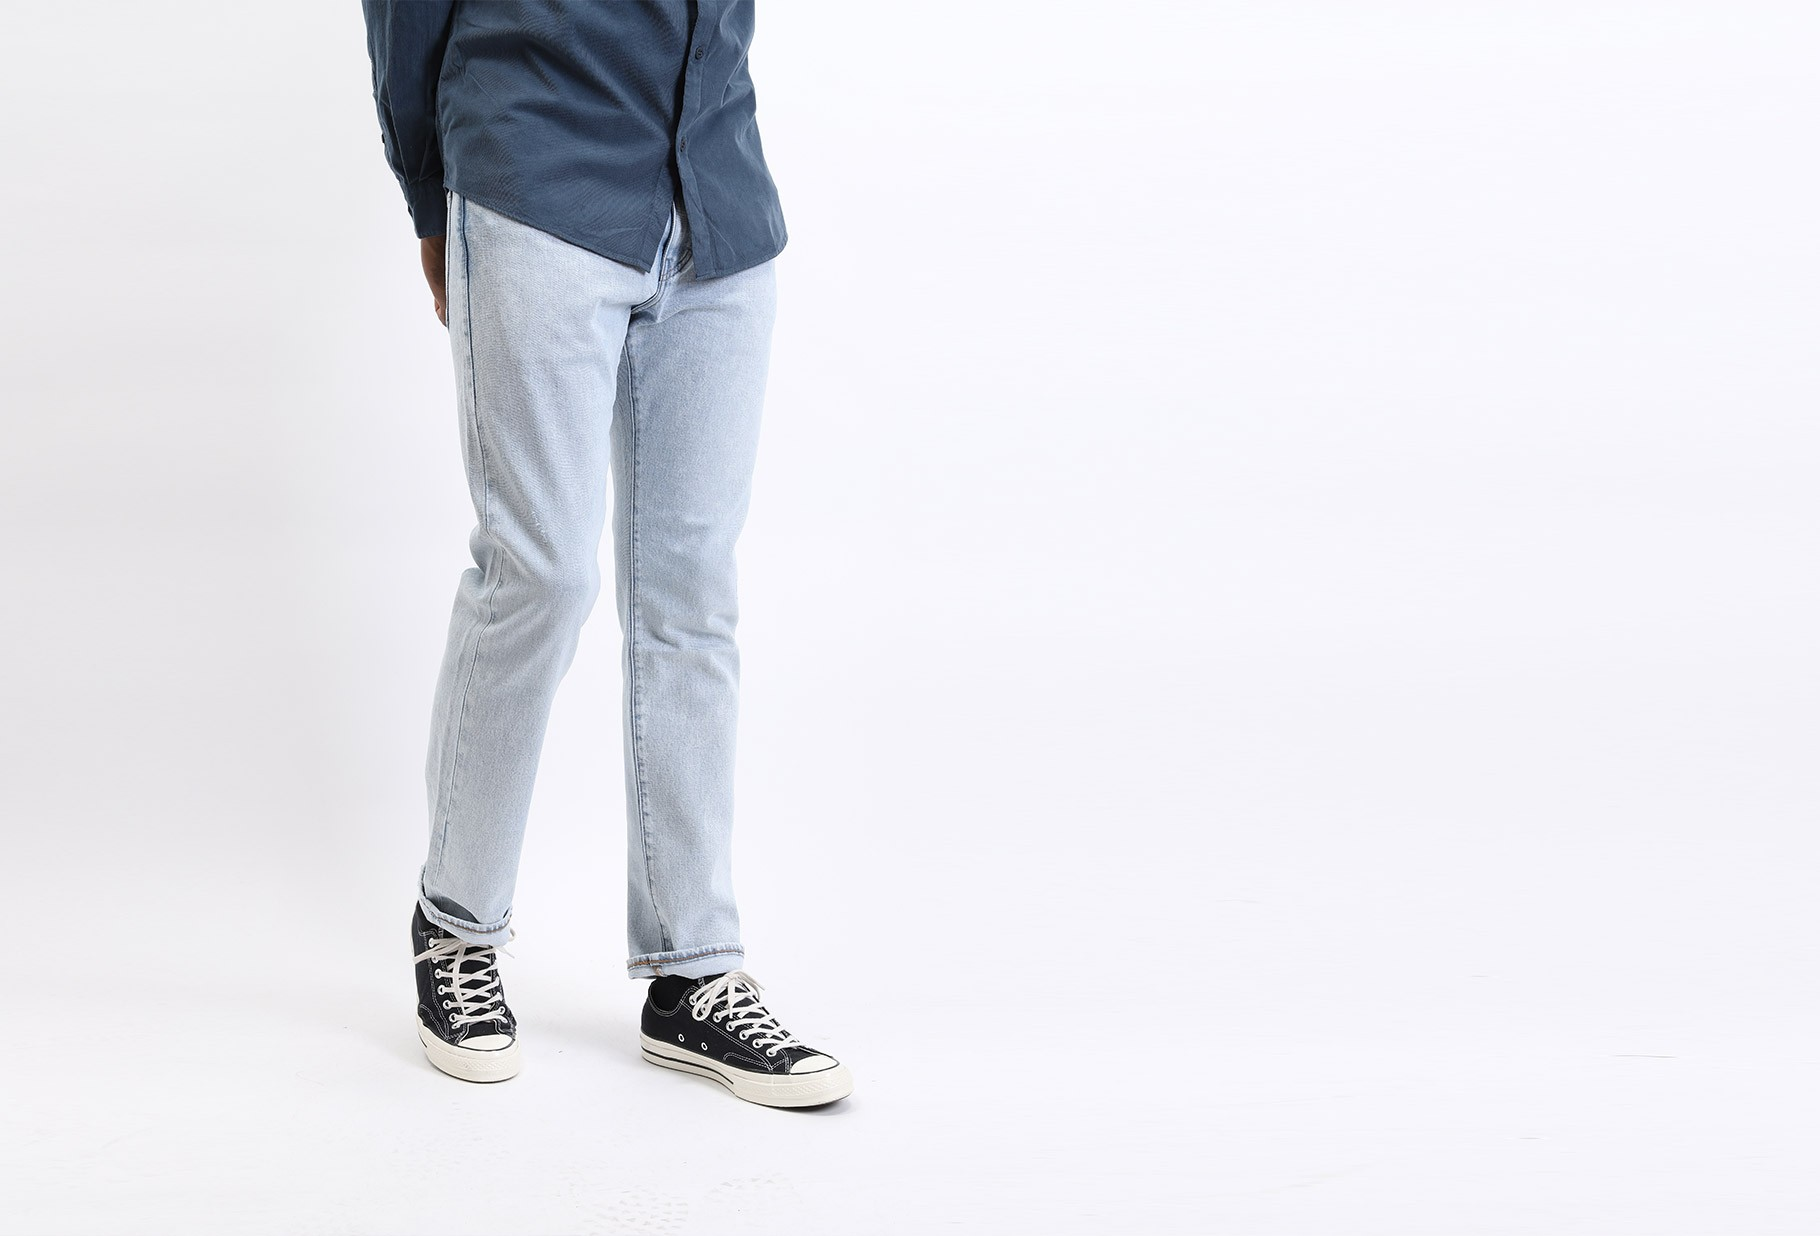 LEVI'S ® MADE AND CRAFTED / Lmc 511 ™ Indigo frost